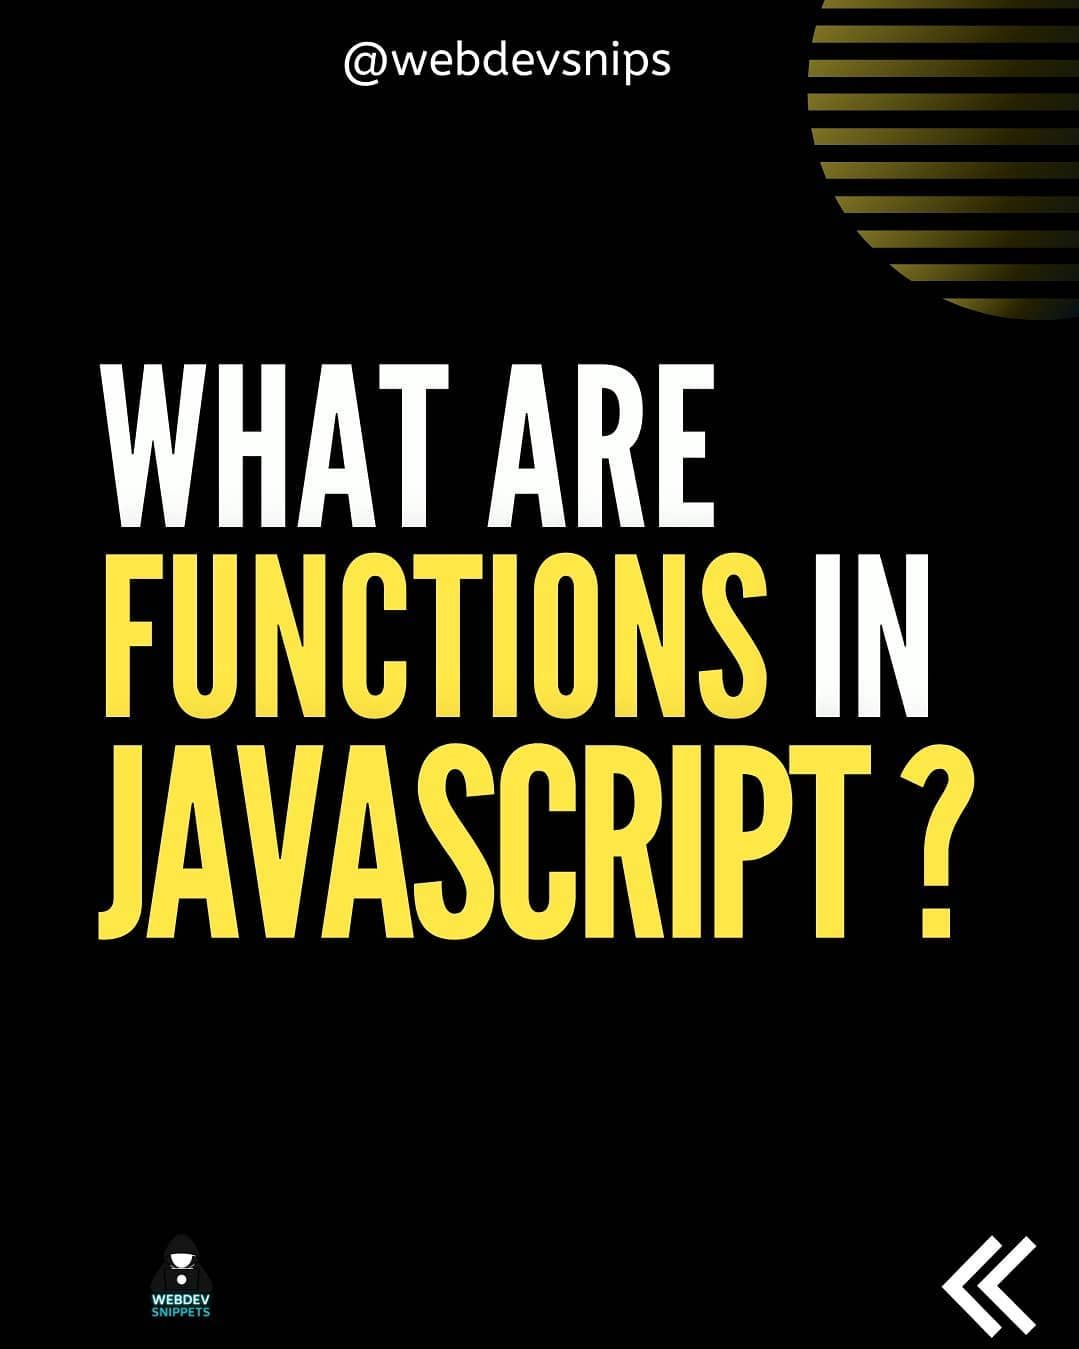 What are functions in javascript